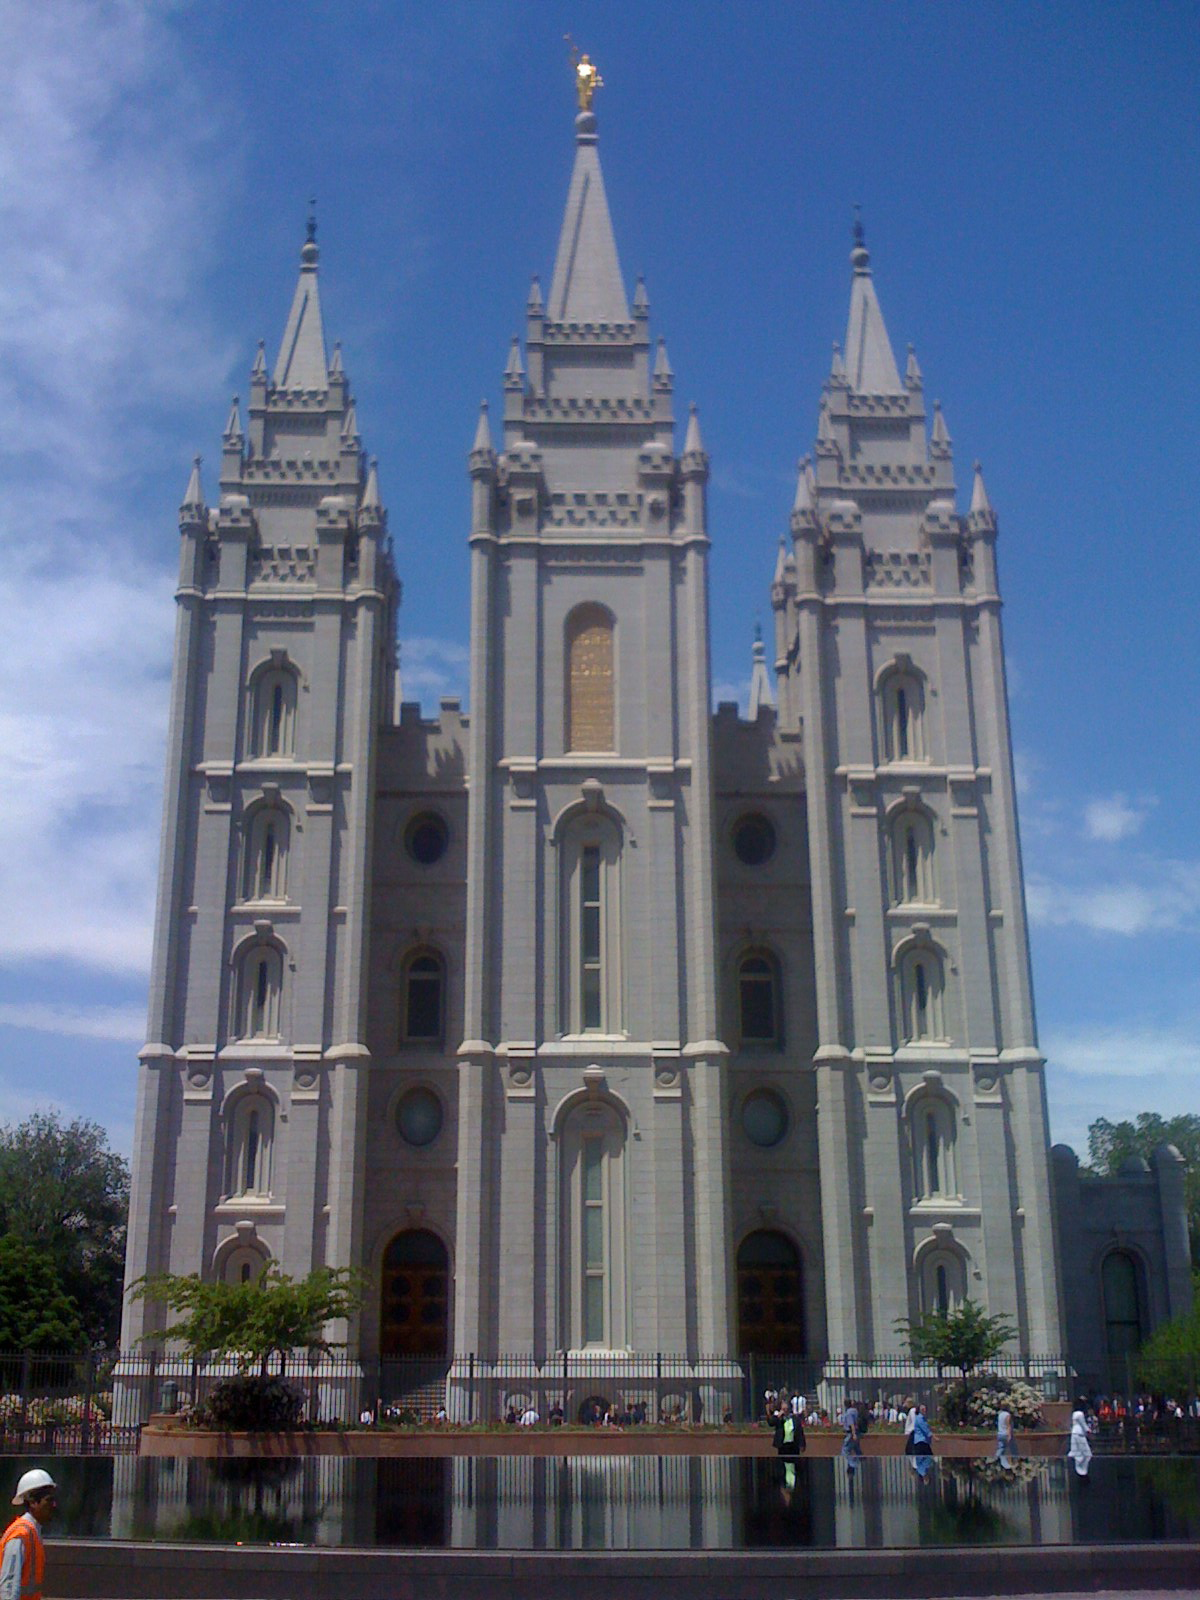 lds Salt Lake Tribune: A Year of Scrutiny For LDS Church